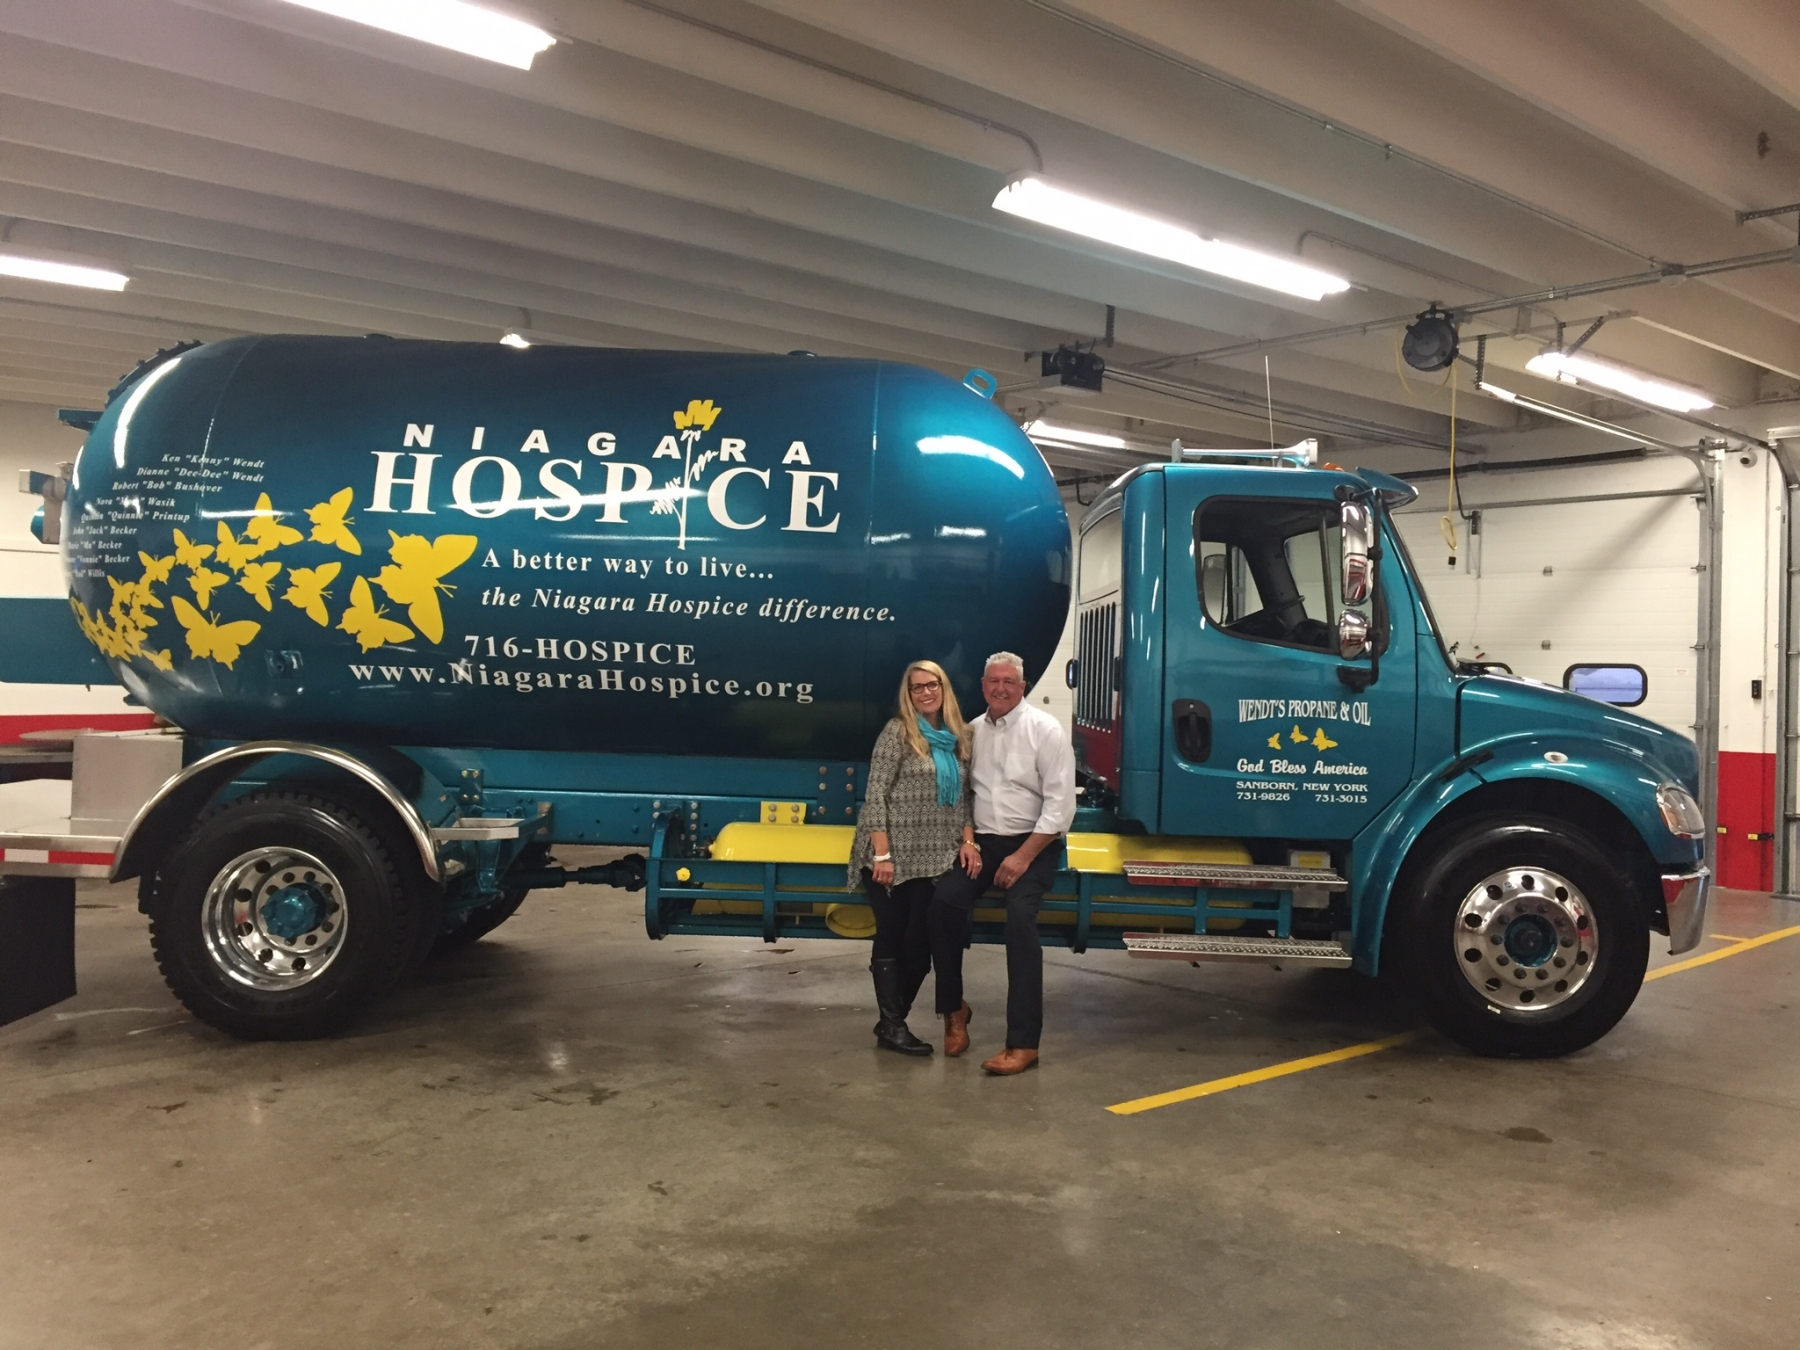 Sue and Paul Wendt unveiled the newest Wendt's Propane & Oil Truck that has been custom designed to also serve as a Niagara Hospice billboard on wheels.